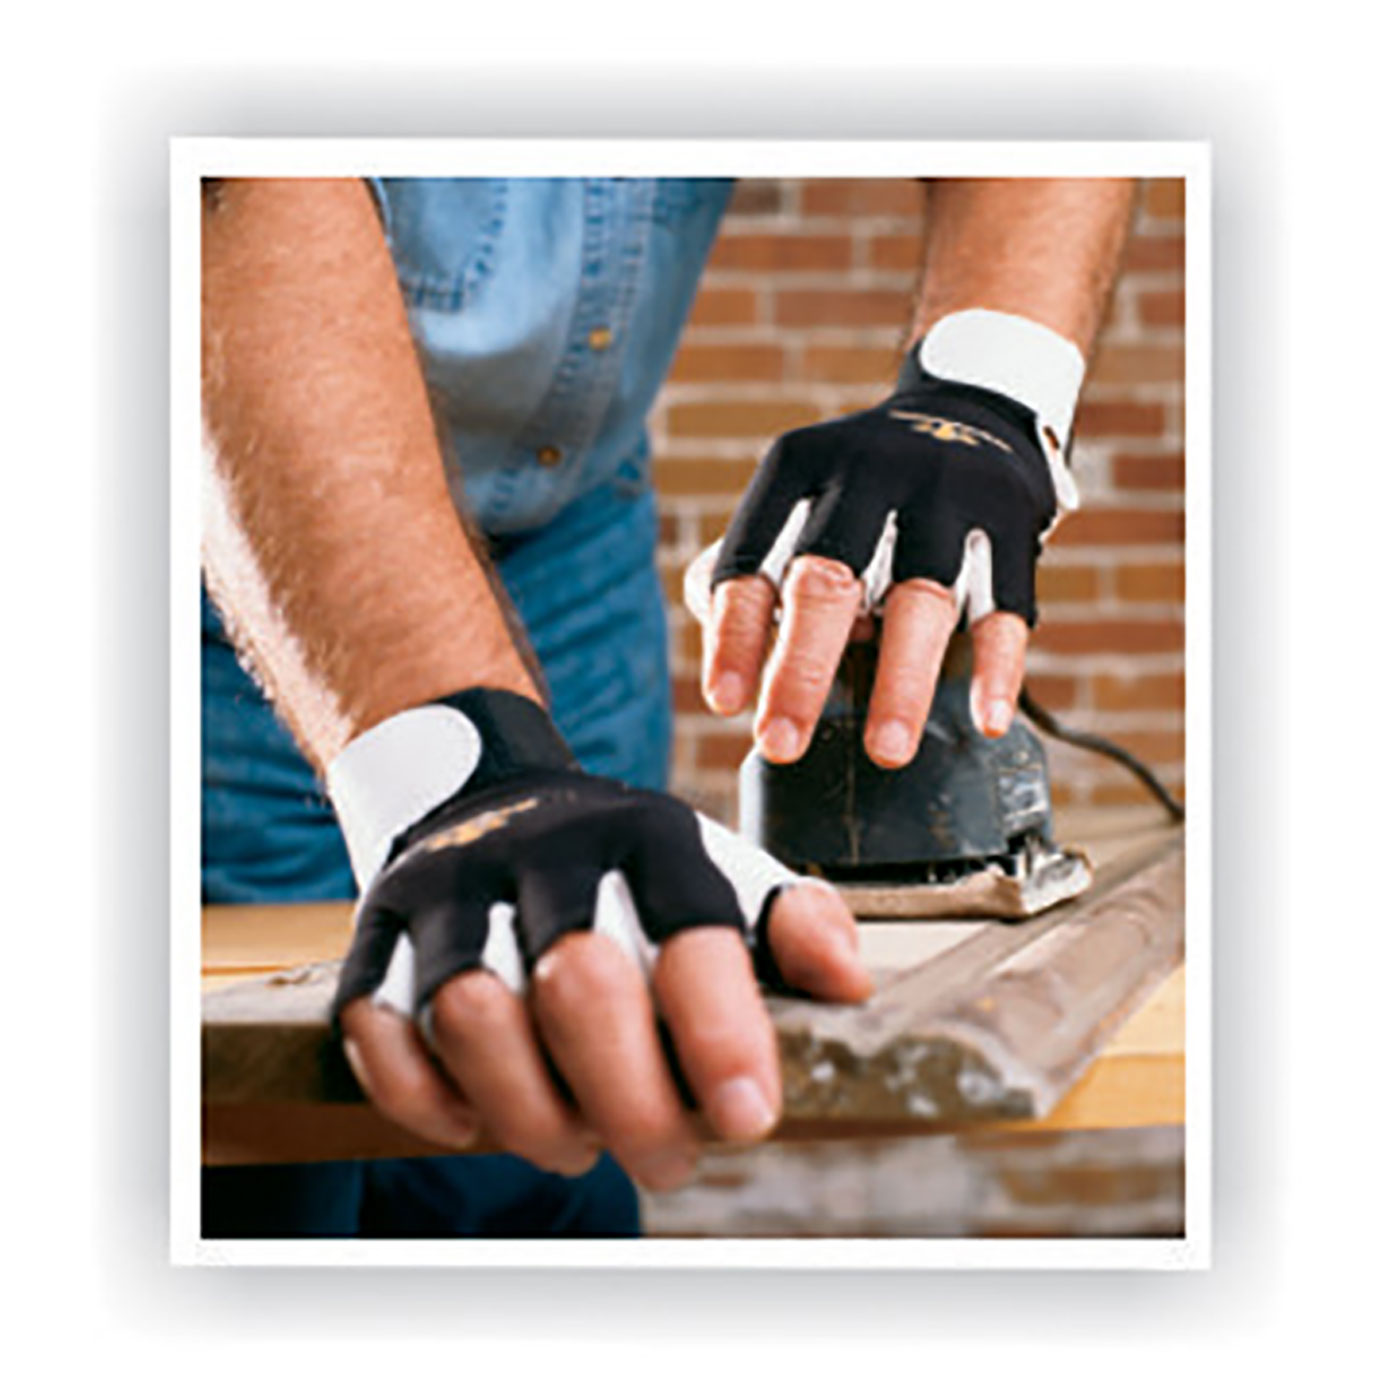 Impacto Impact/Anti-Vibration Glove